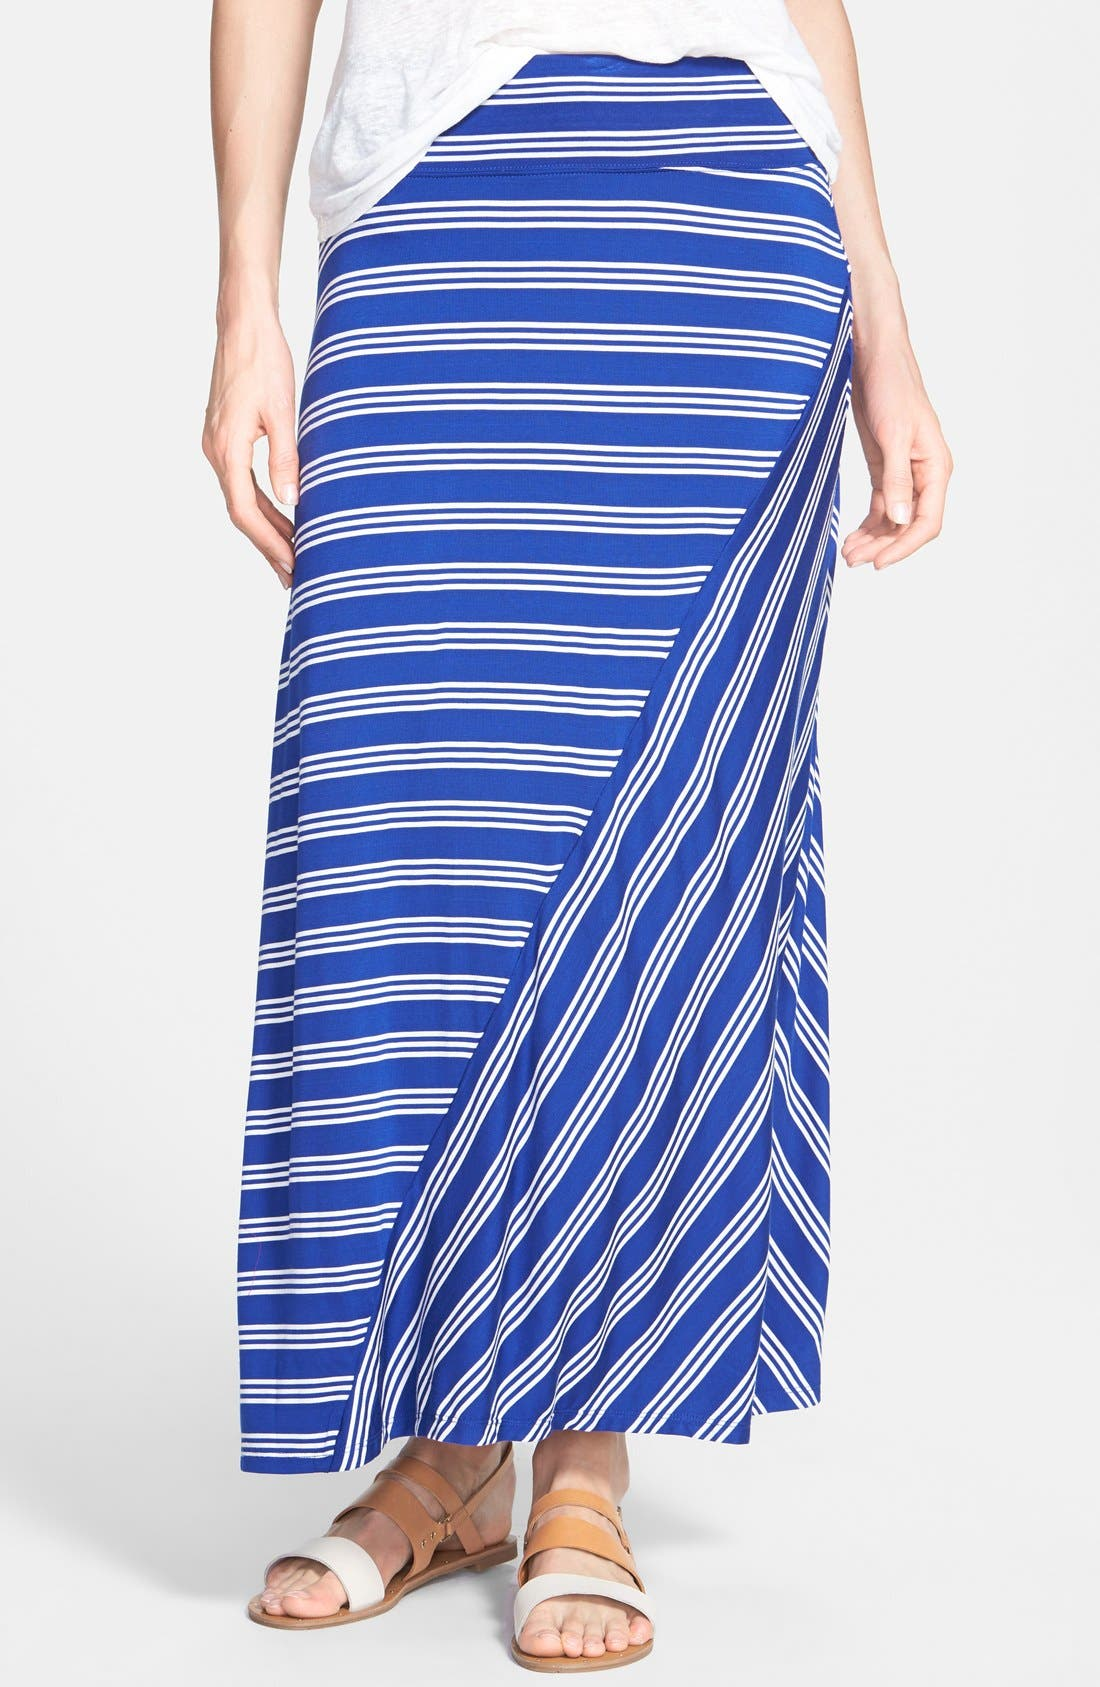 Main Image - kensie Stripe Stretch Knit Maxi Skirt